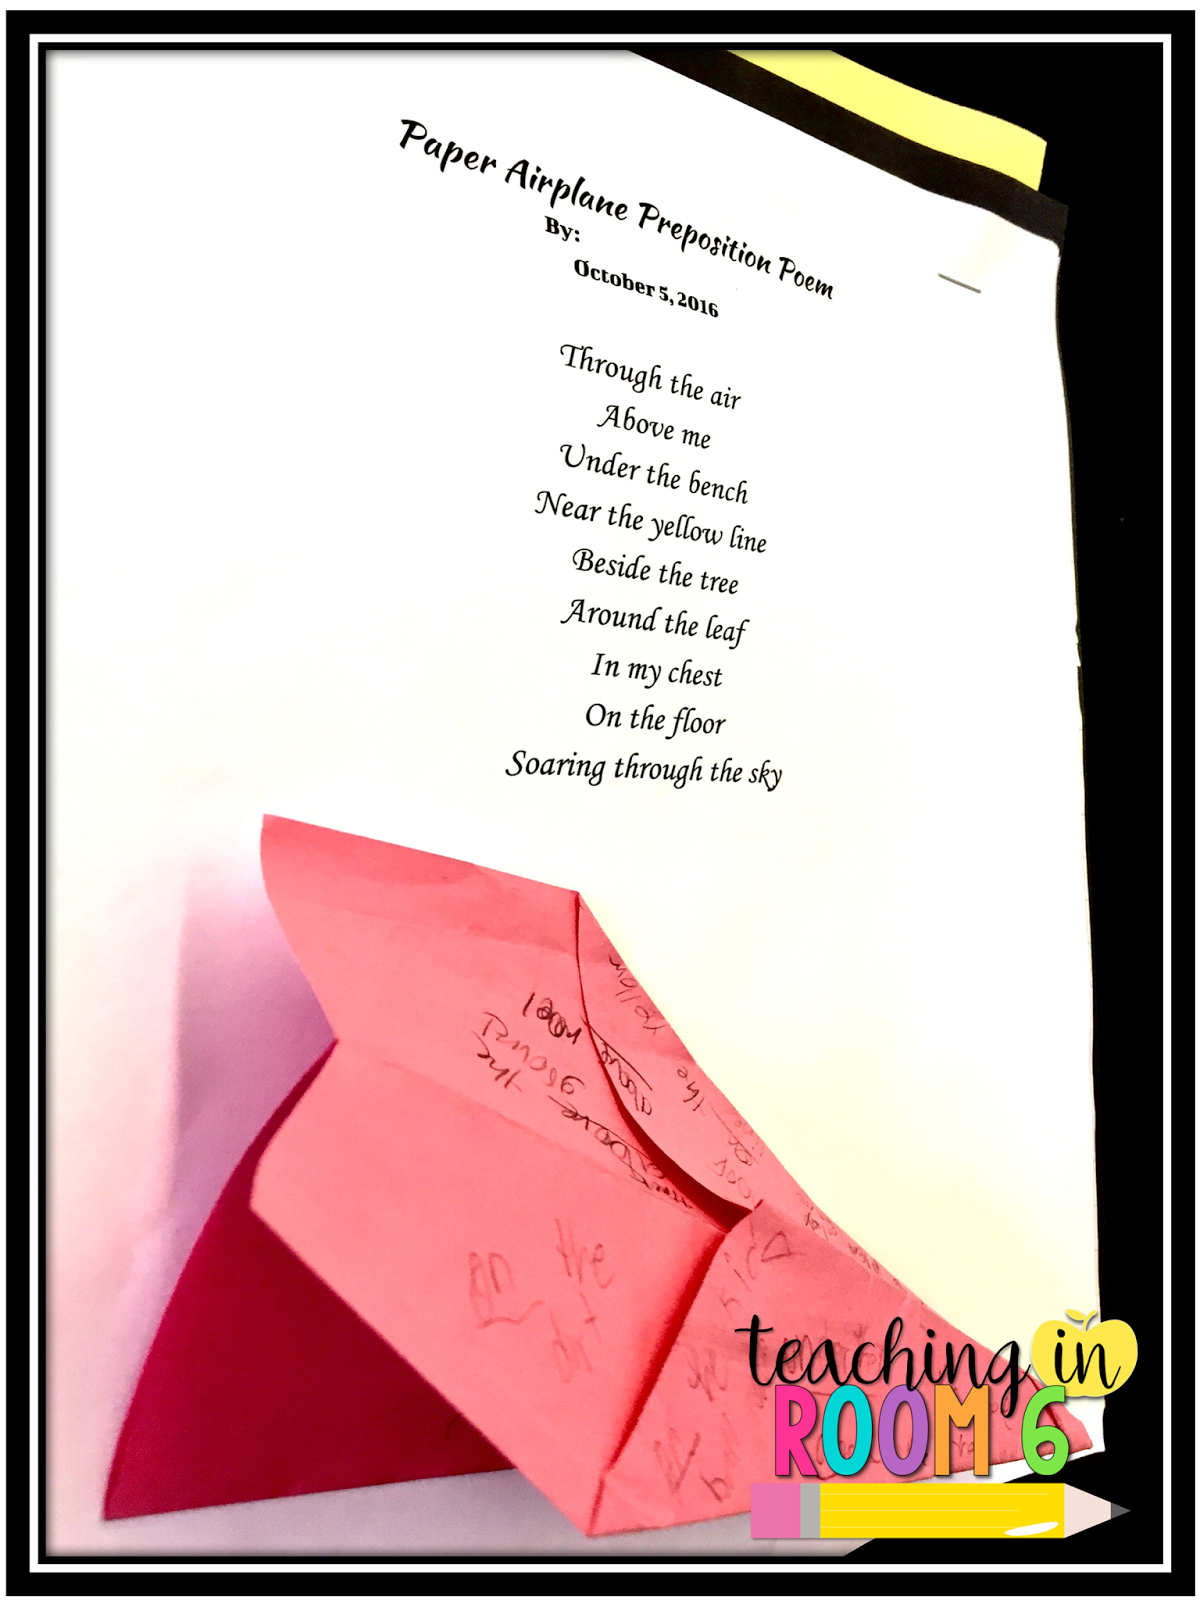 Prepositional Phrase Paper Planes and Poems - Teaching in ...